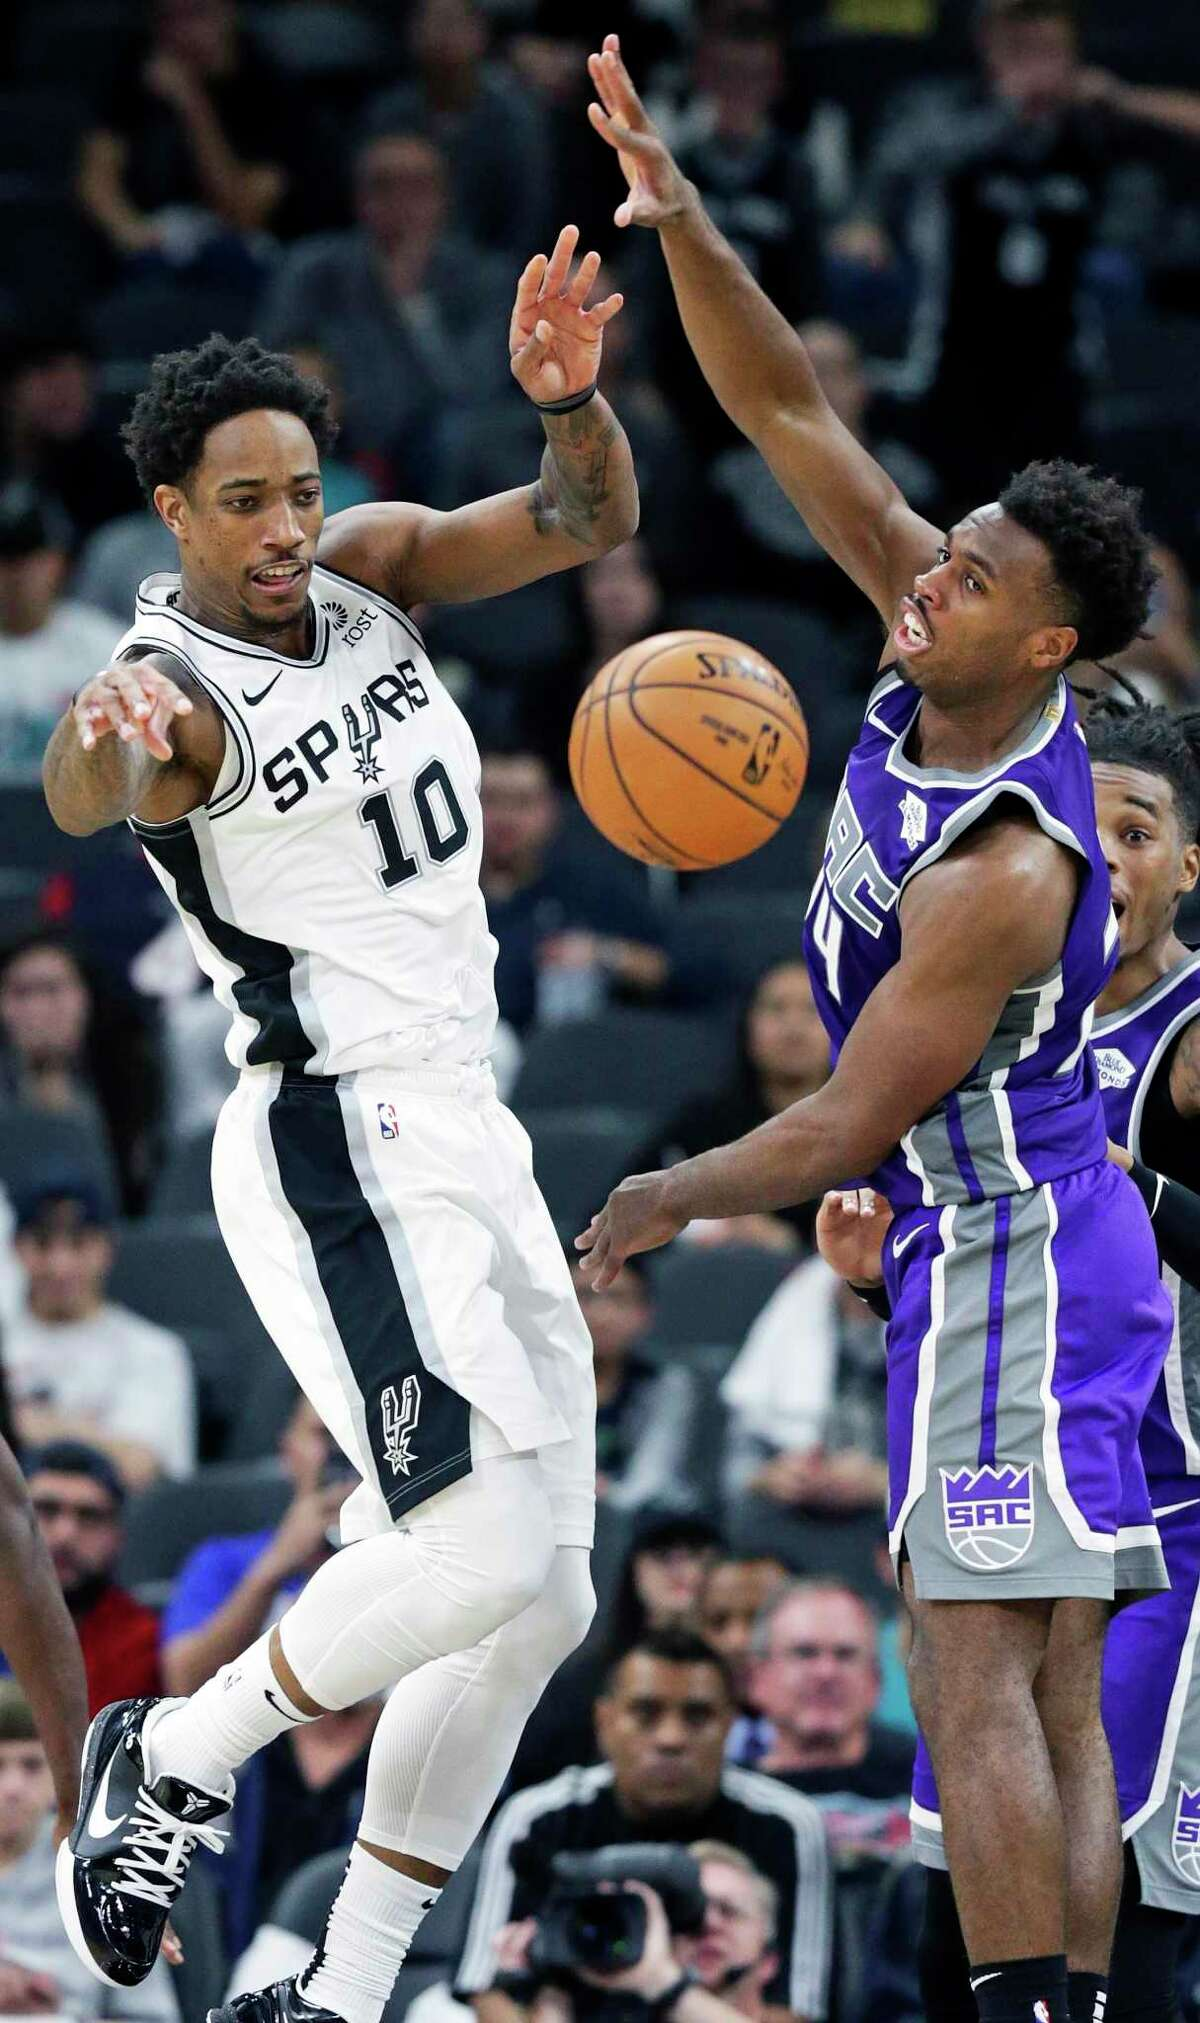 Had the pandemic not happened, DeMar DeRozan might already have opted out of the Spurs' rebuilding project. But his odds of staying suddenly seem much greater.